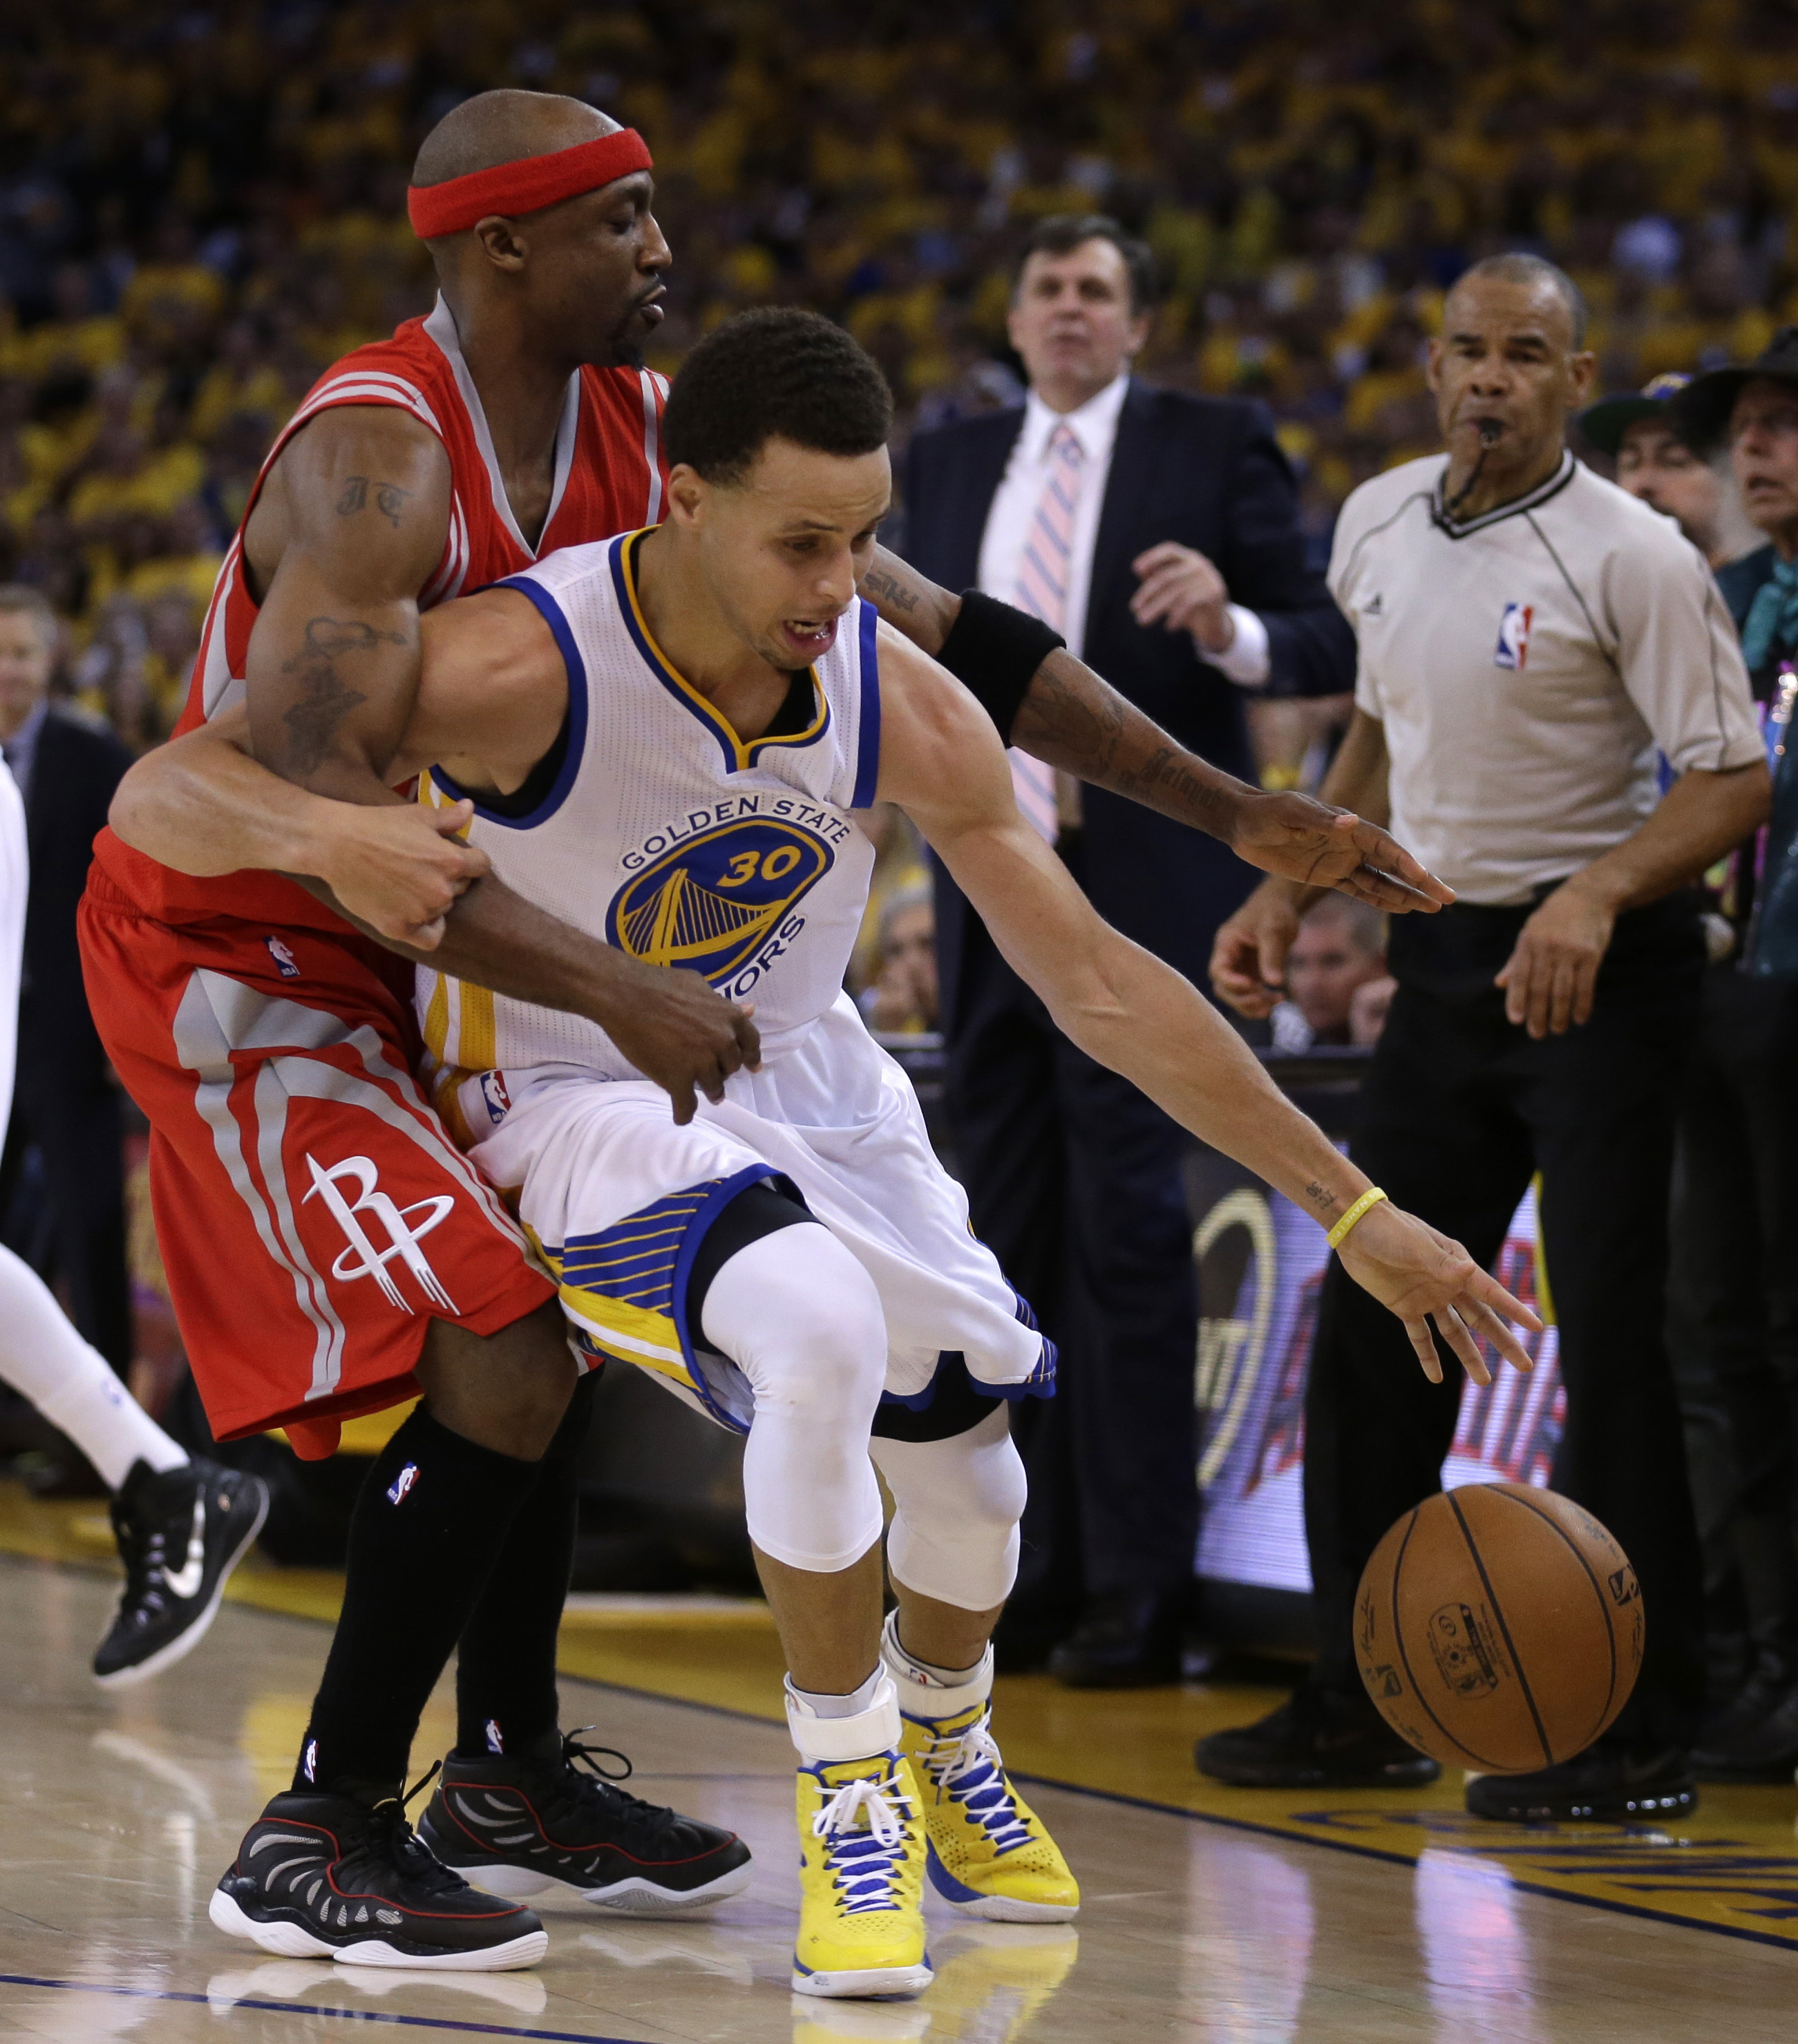 Nba Finals 2015 Game 6 Postgame | All Basketball Scores Info